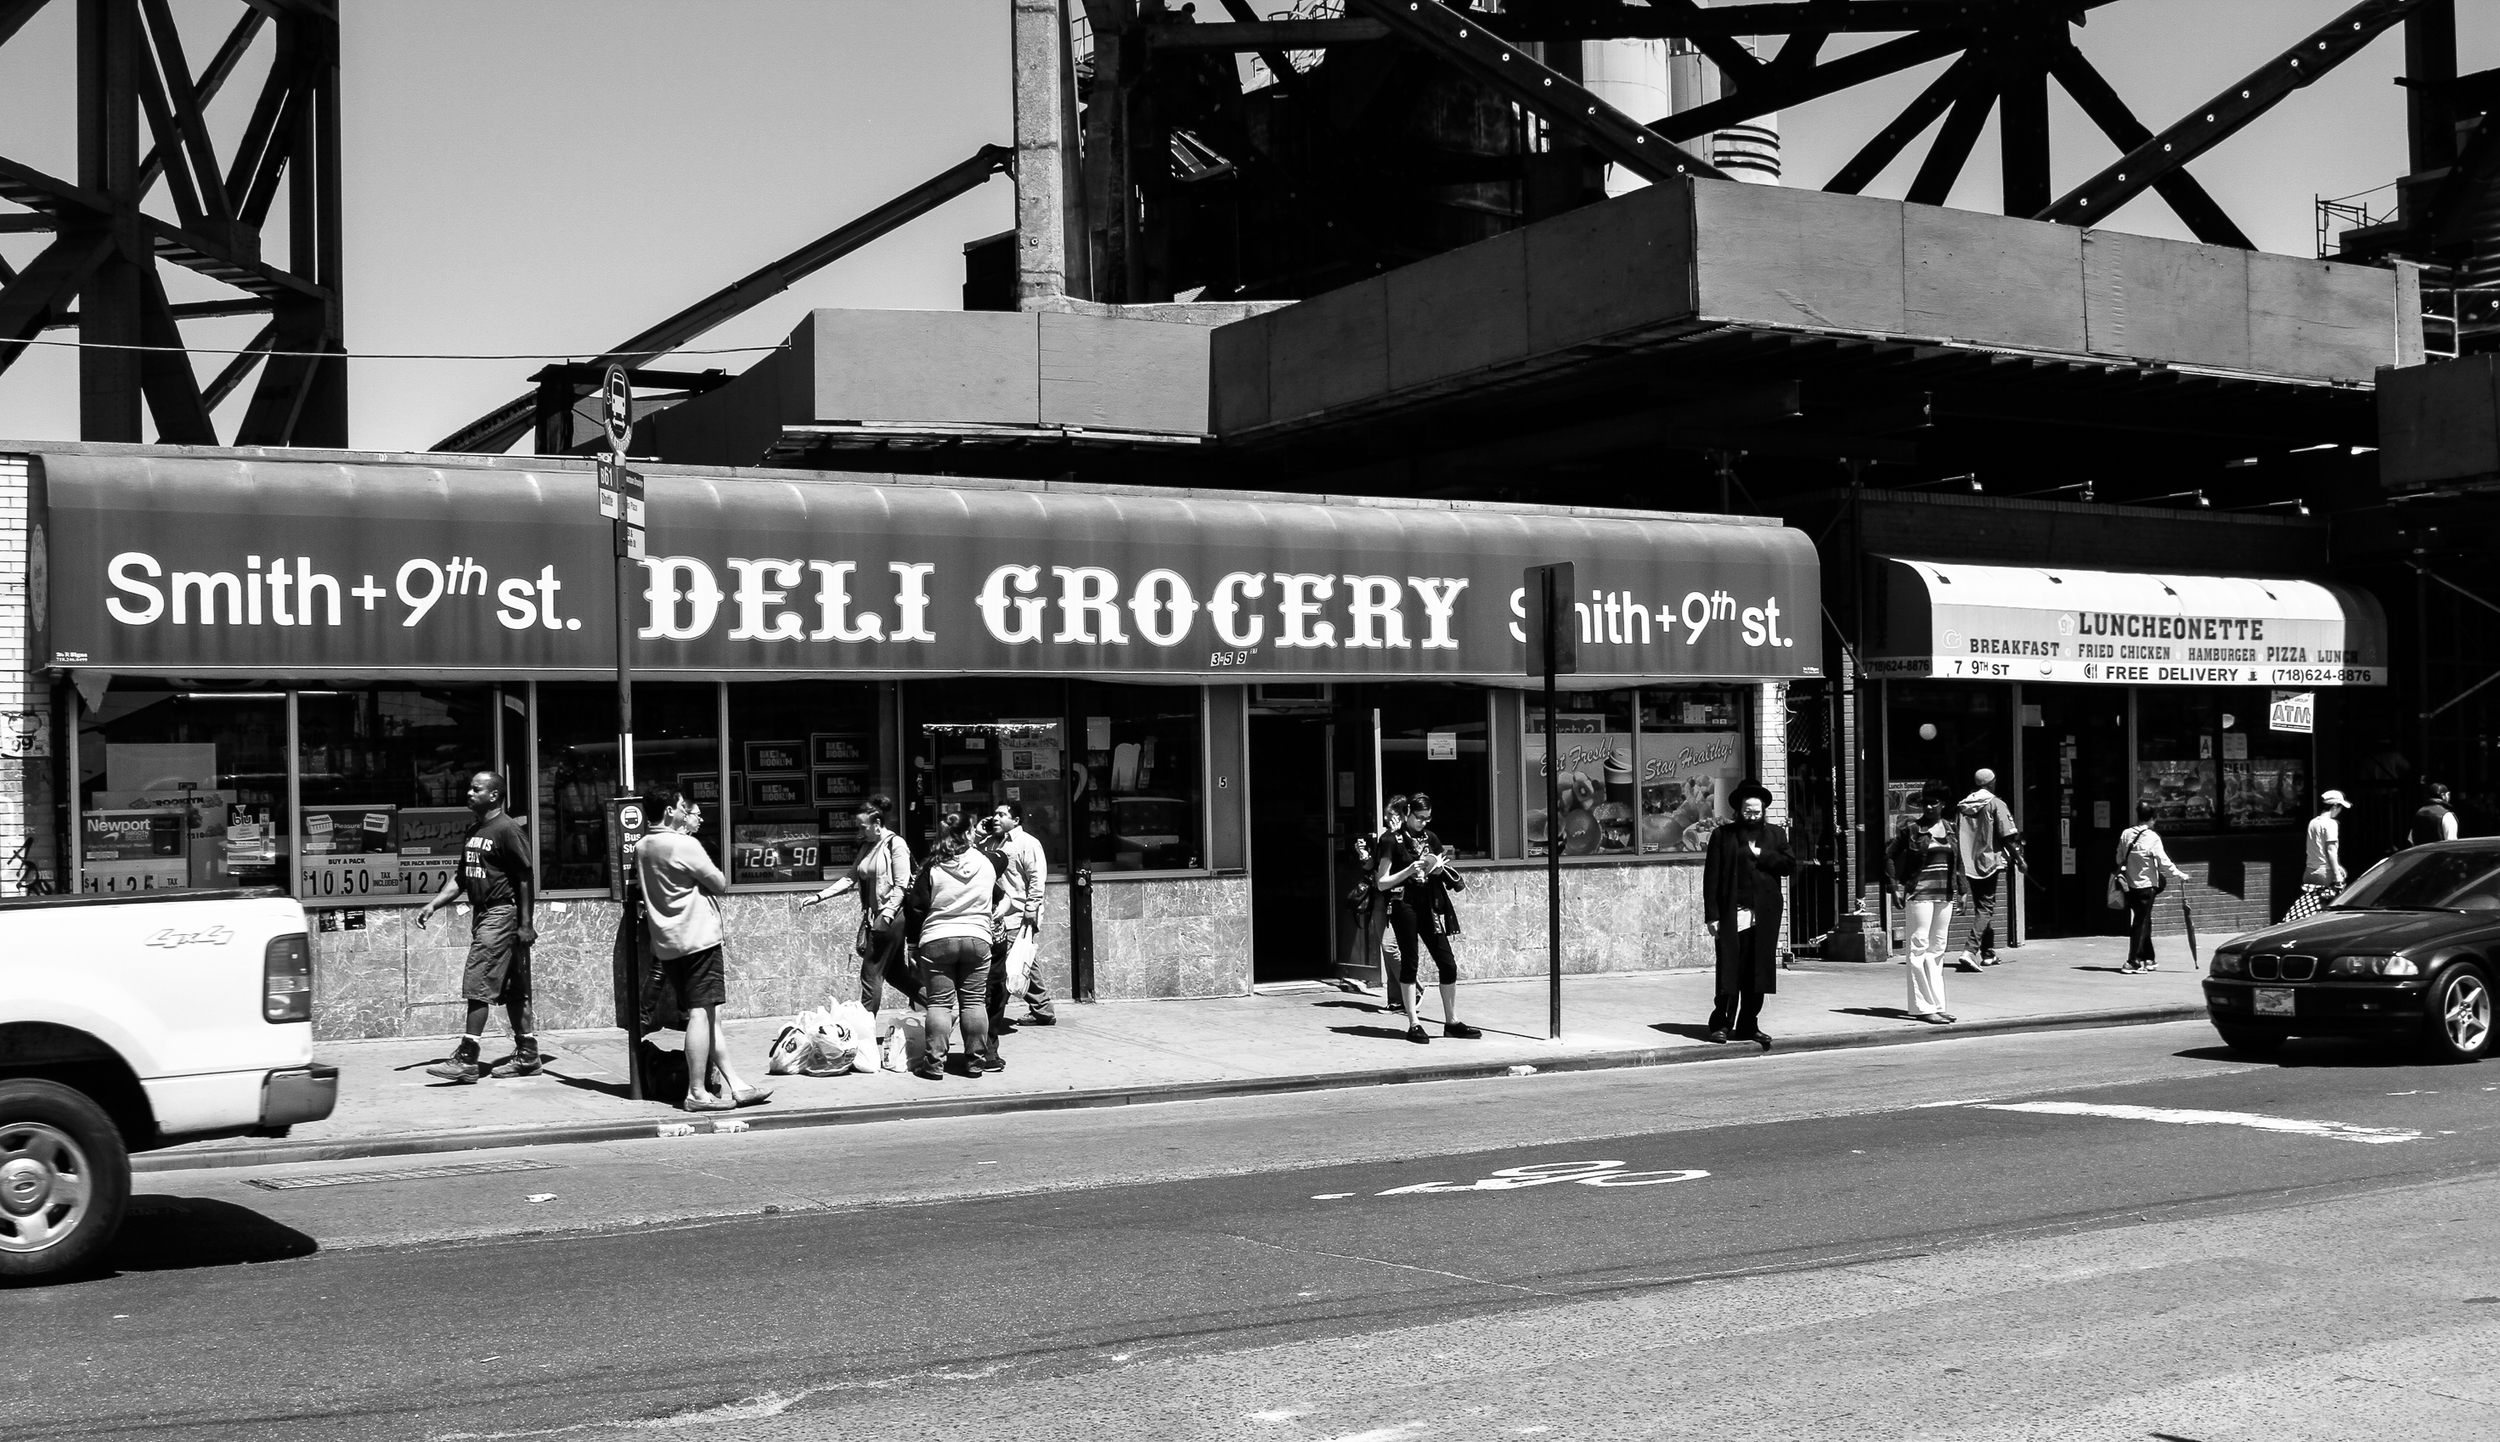 While the Deli is a mainstay of NYC life, the luncheonette is rapidly becoming a piece of history.